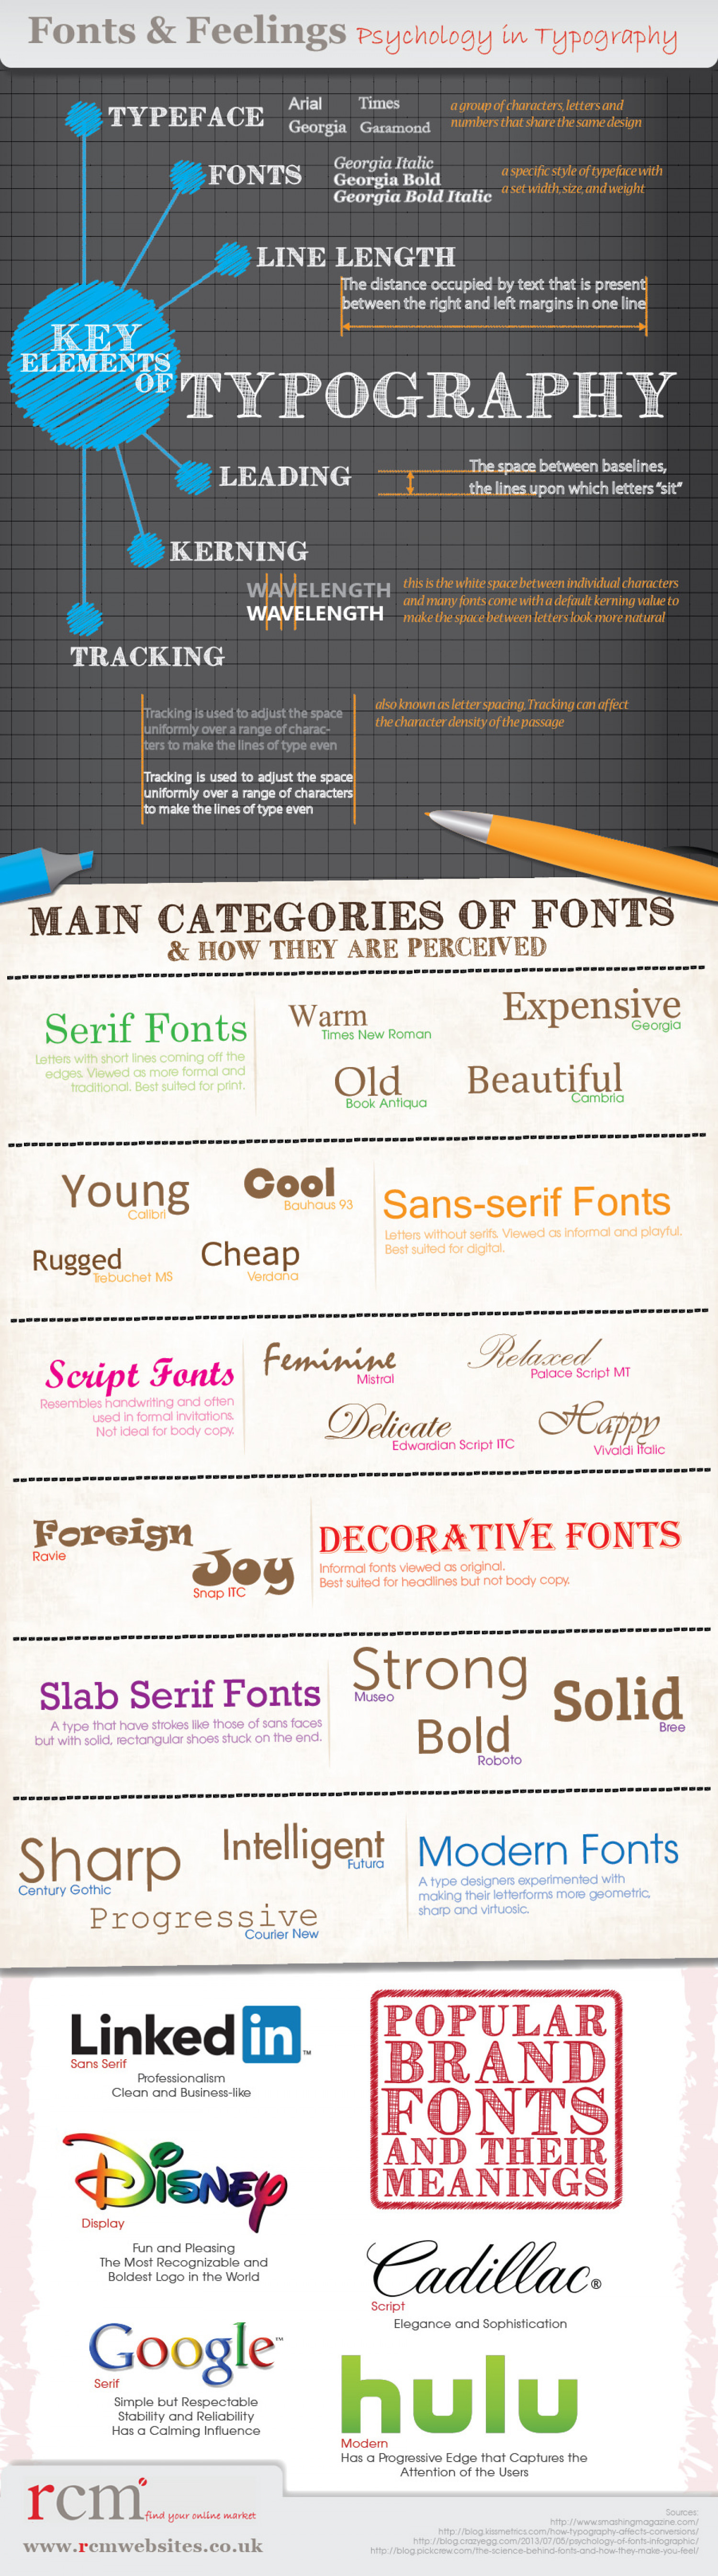 Fonts and Feelings: Psychology in Typography Infographic